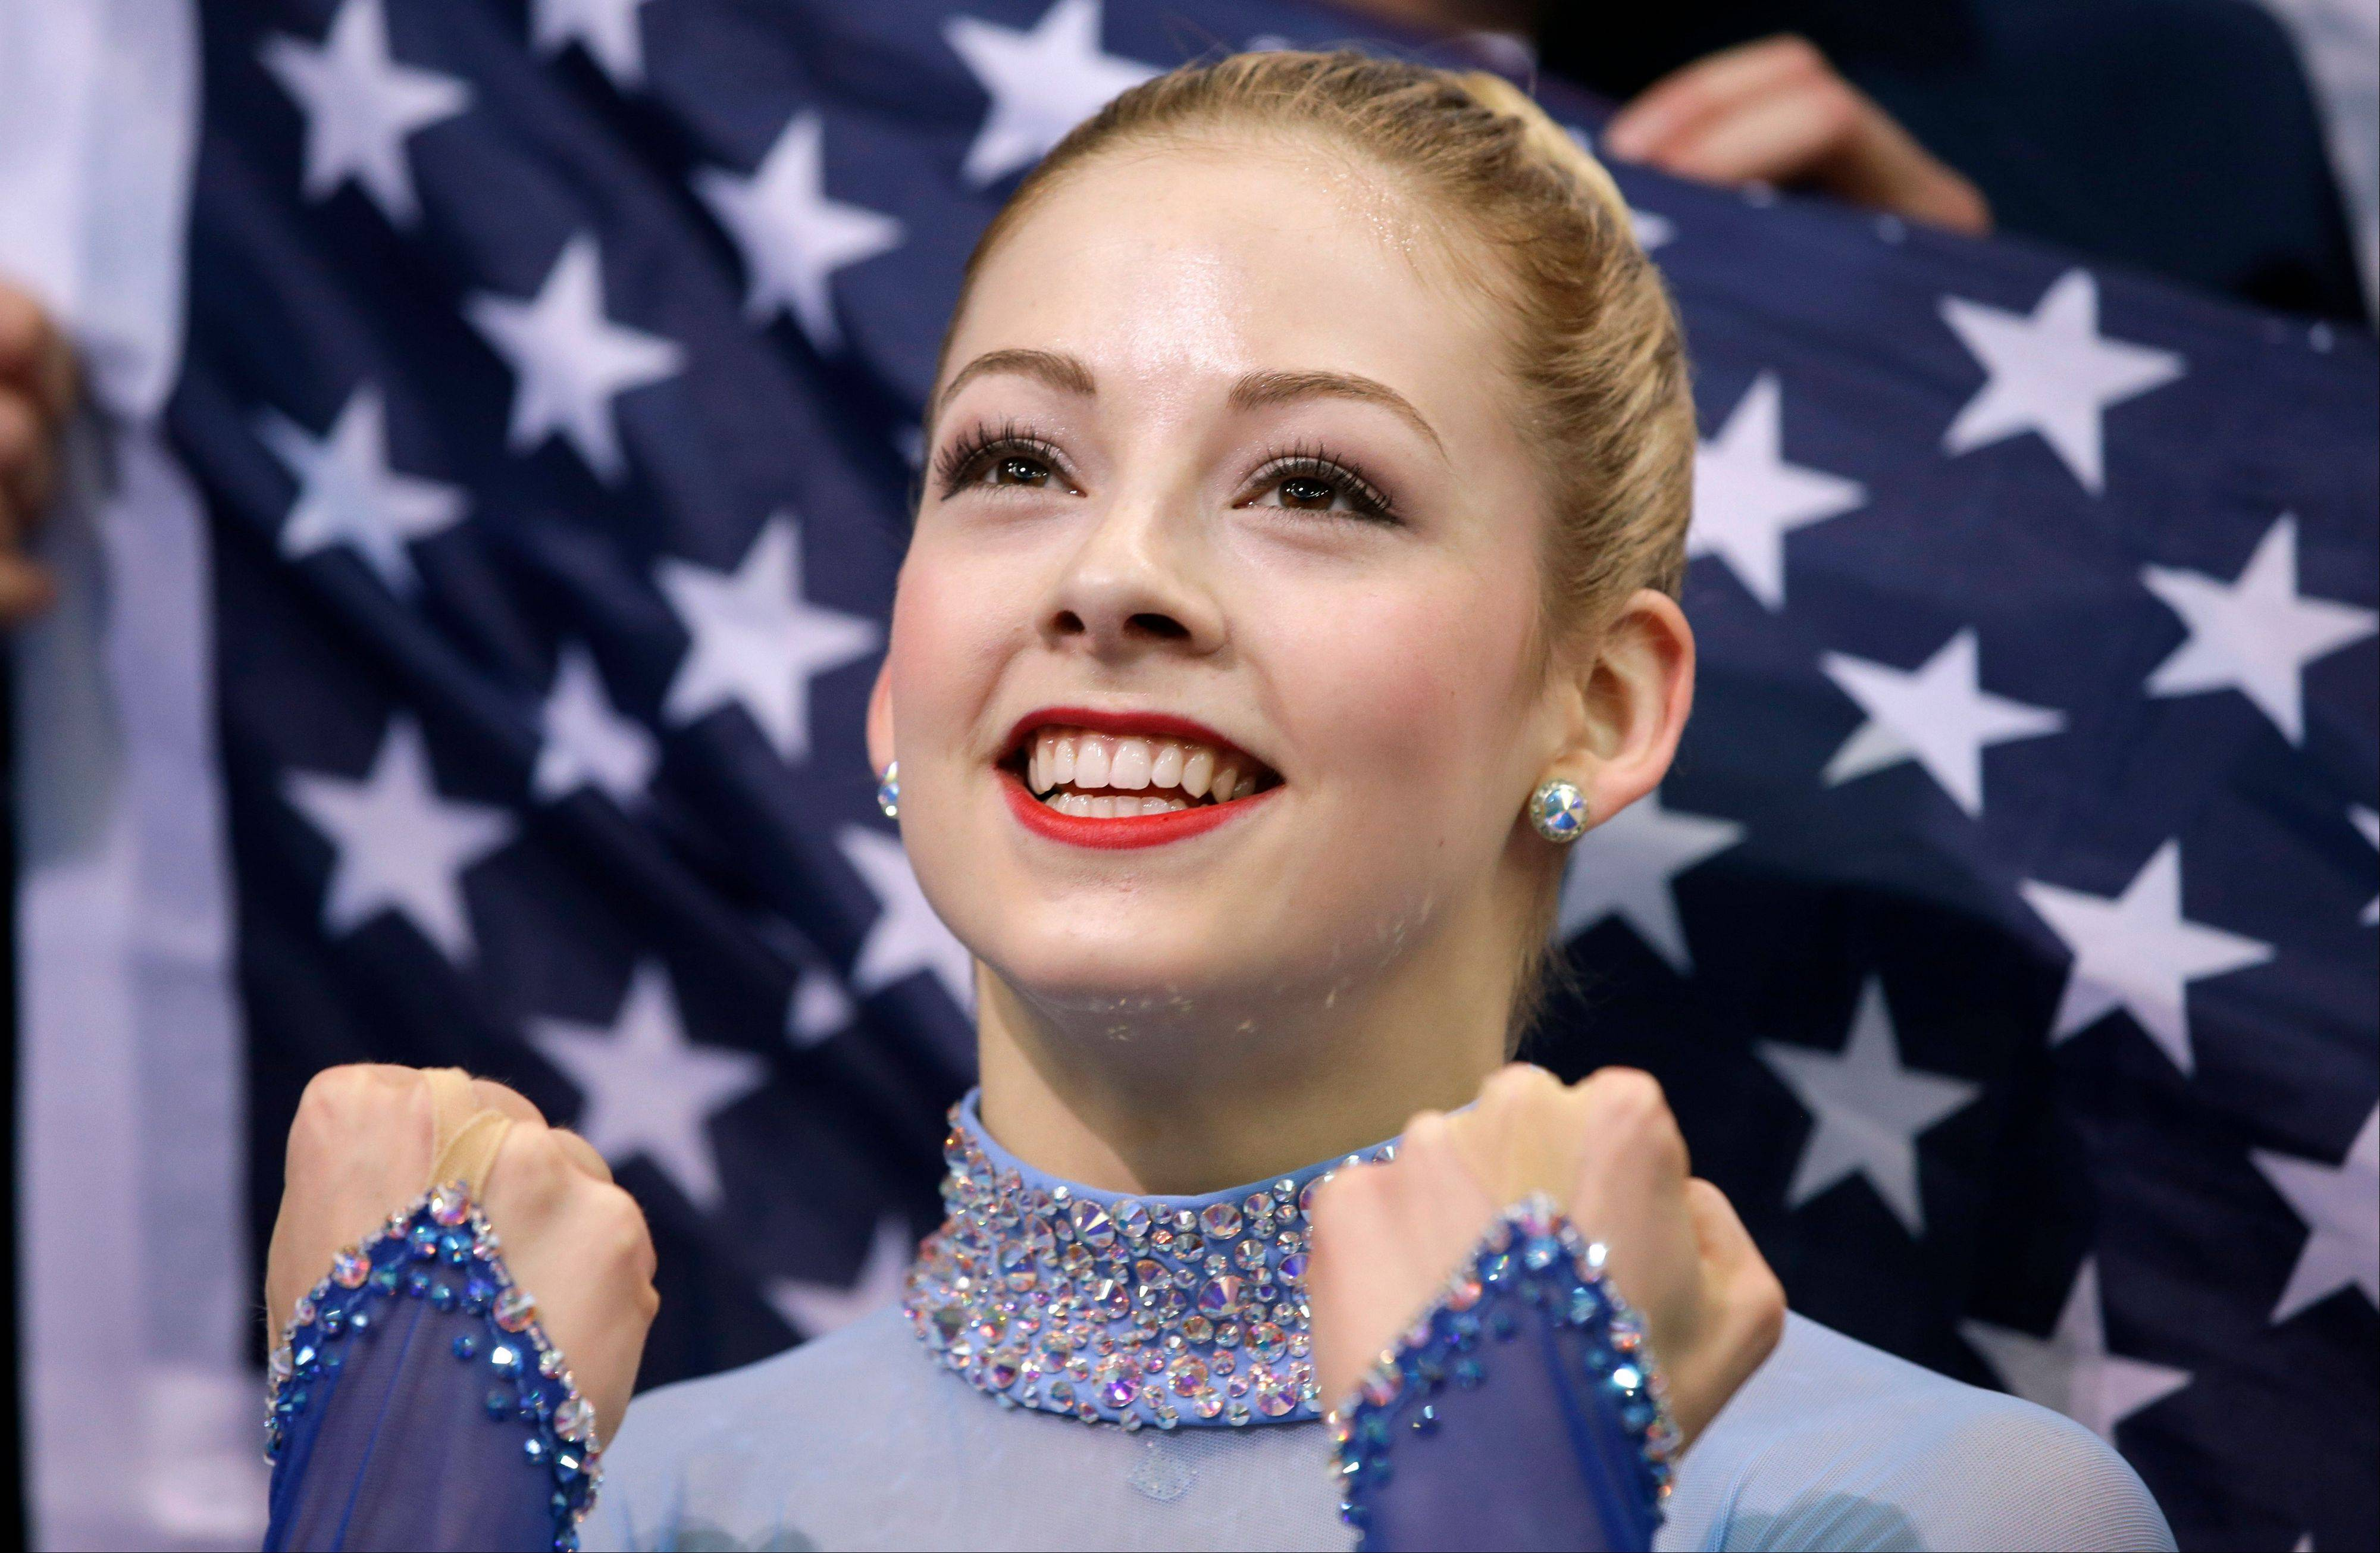 Gracie Gold of the United States reacts in the results area after competing in the women�s team free skate figure skating competition at the Iceberg Skating Palace during the 2014 Winter Olympics, Sunday, Feb. 9, 2014, in Sochi, Russia.